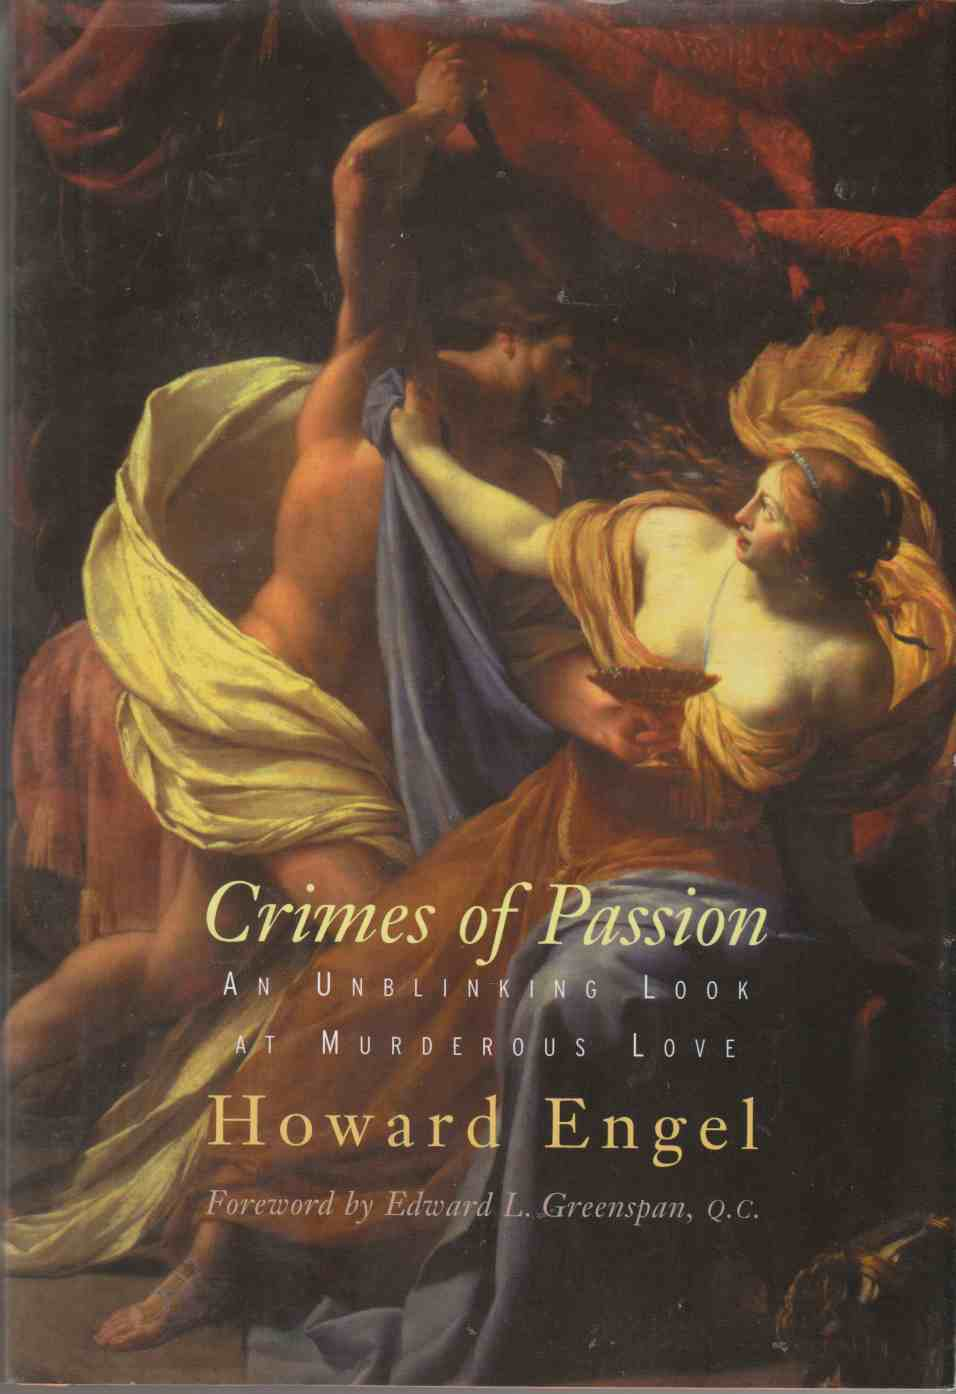 Image for Crimes of Passion An Unblinking Look At Murderous Love